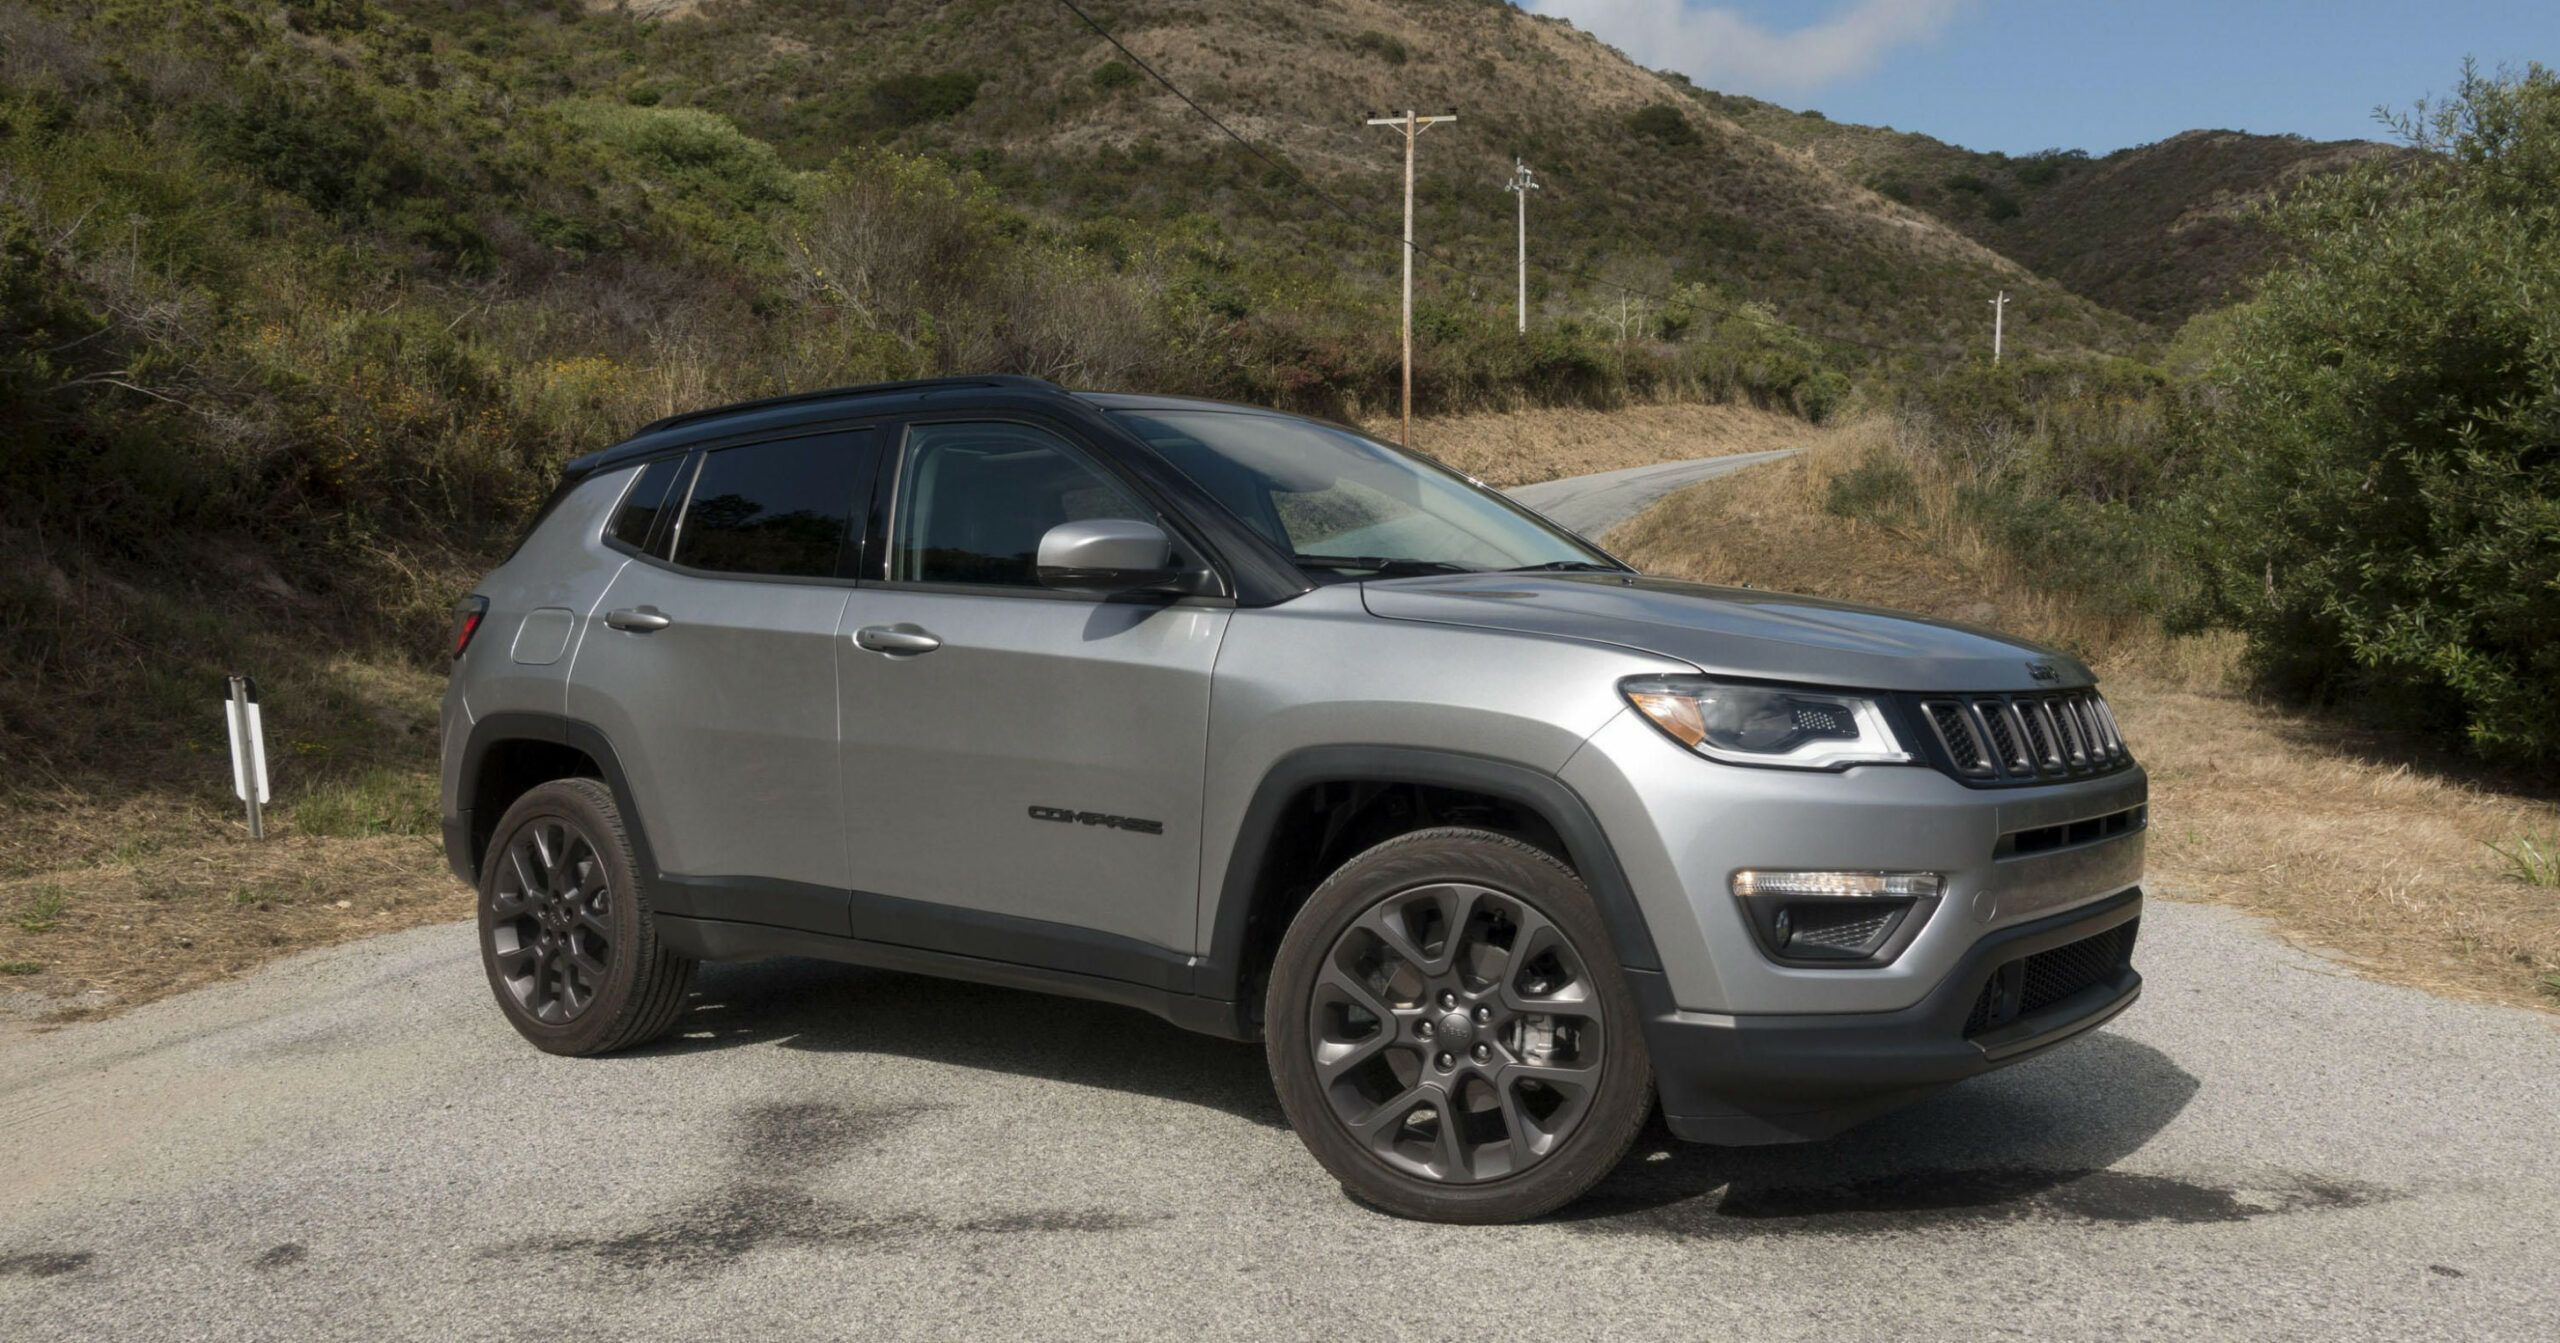 2020 Jeep Compass Exterior In 2020 Jeep Compass Jeep Compass Price Car